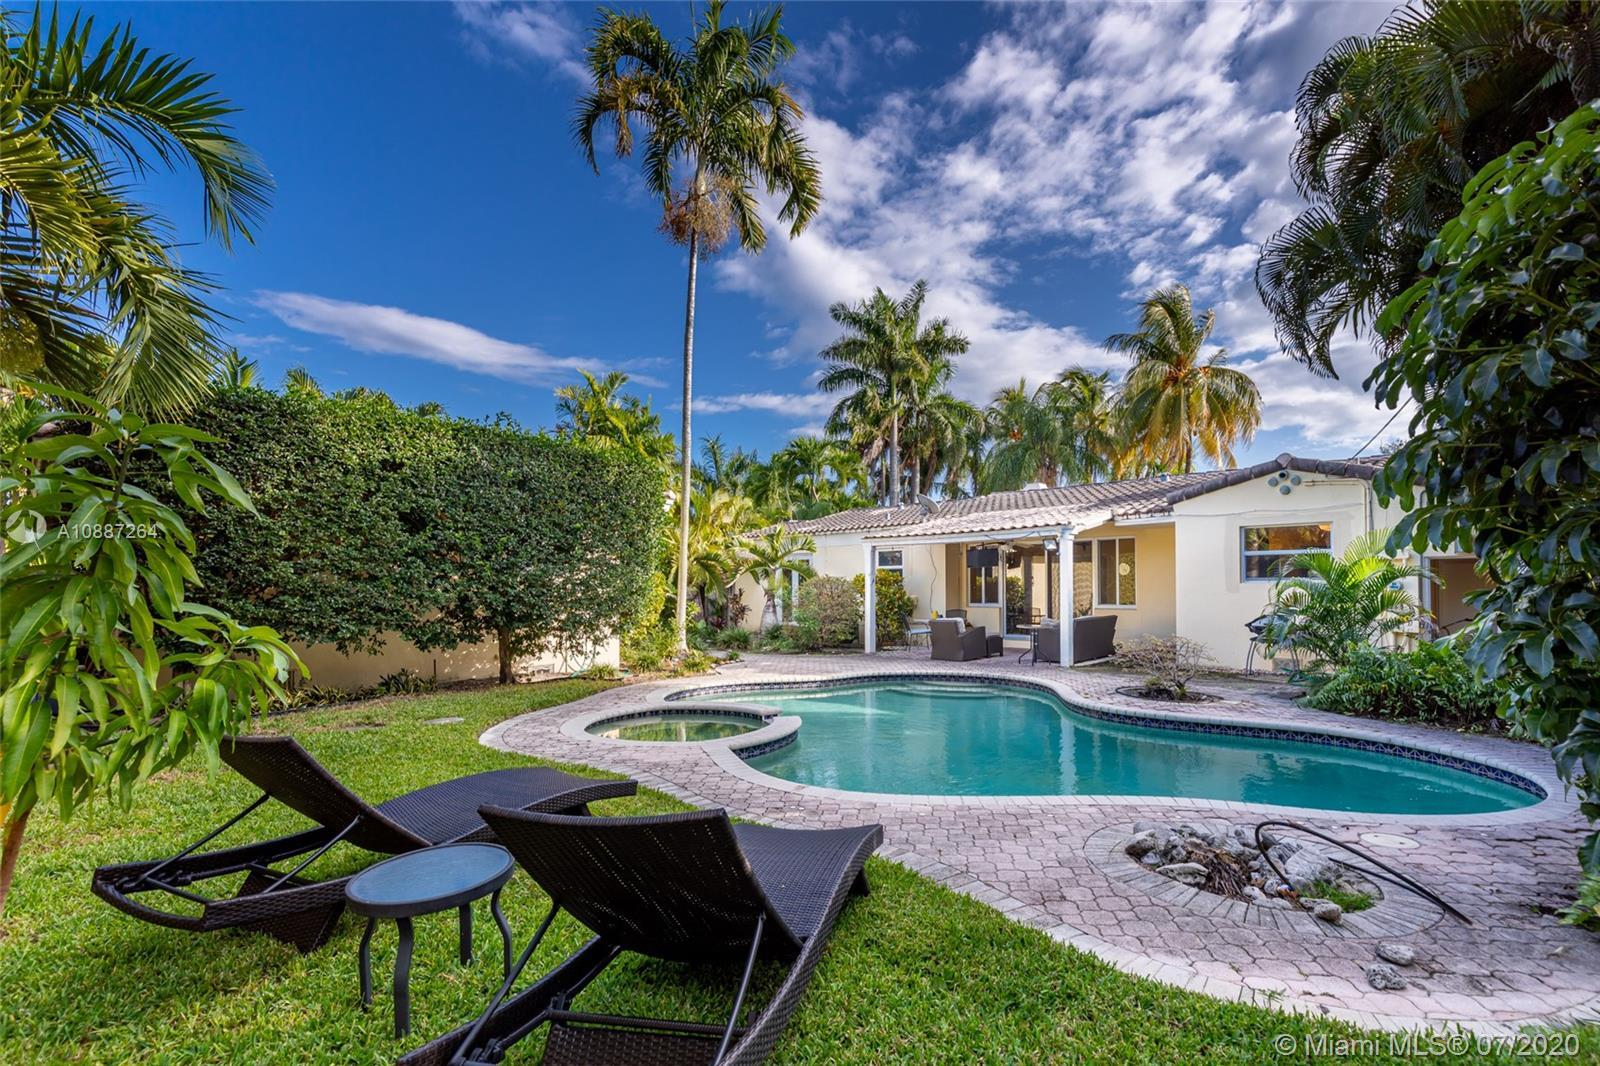 $1,000 buyer's agent bonus for full price close. Expires November 1st. Not available to buyer's agen